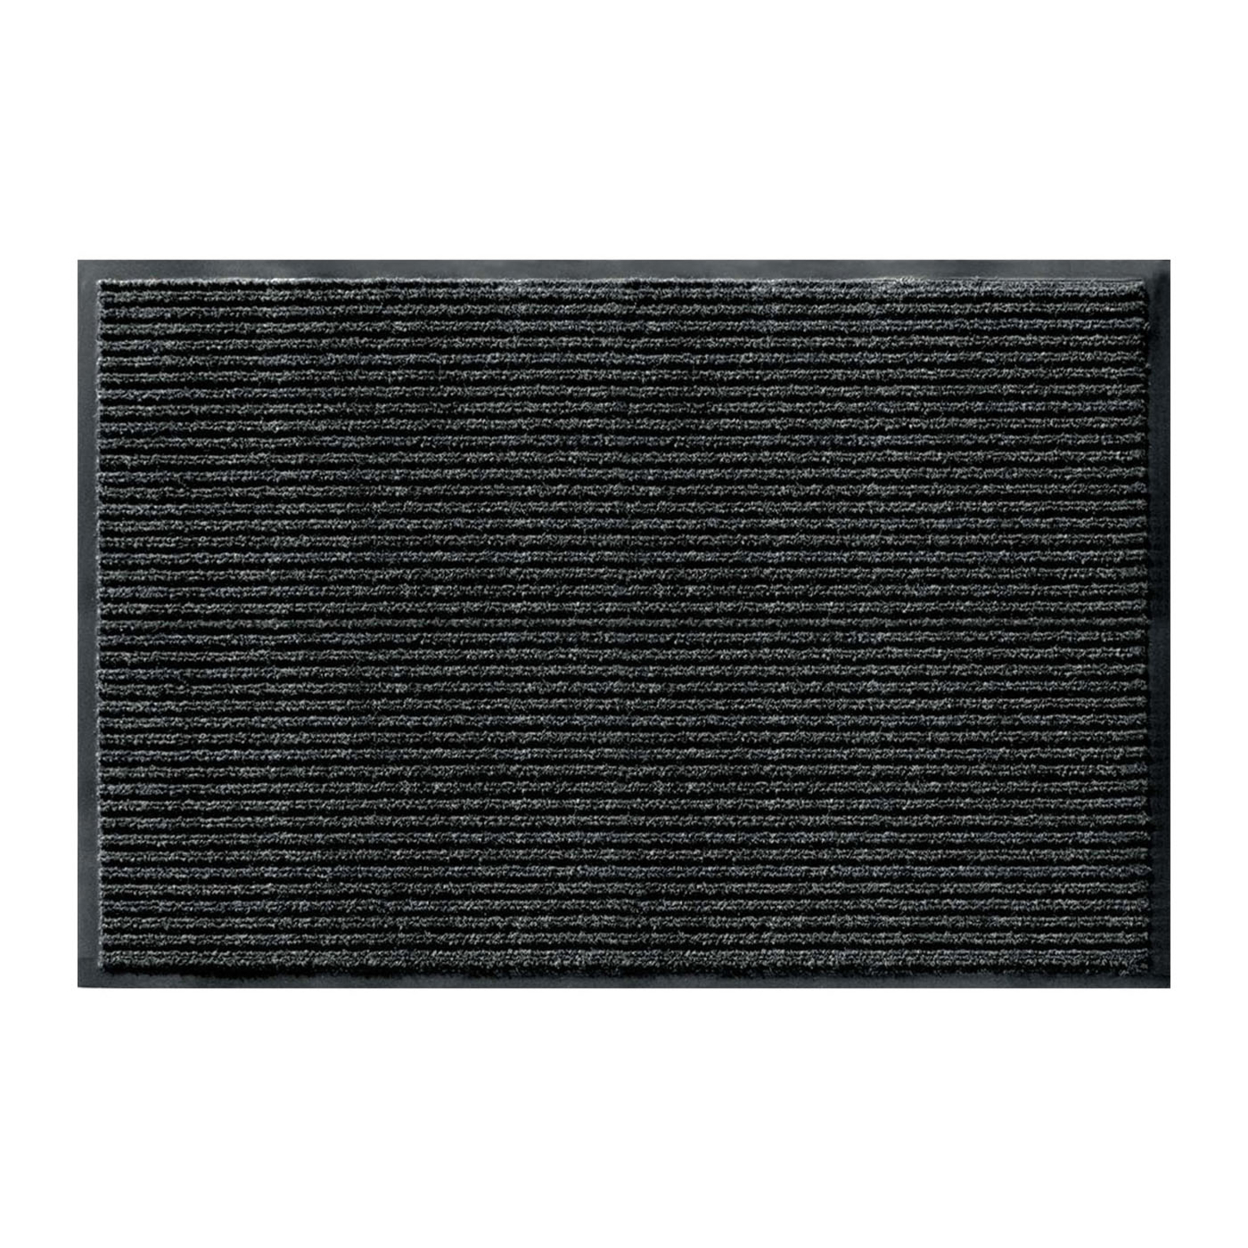 BuyMats Home Indoor Outdoor Apache Rib Mat - Pepper 5950e82d2a00e453106a50aa